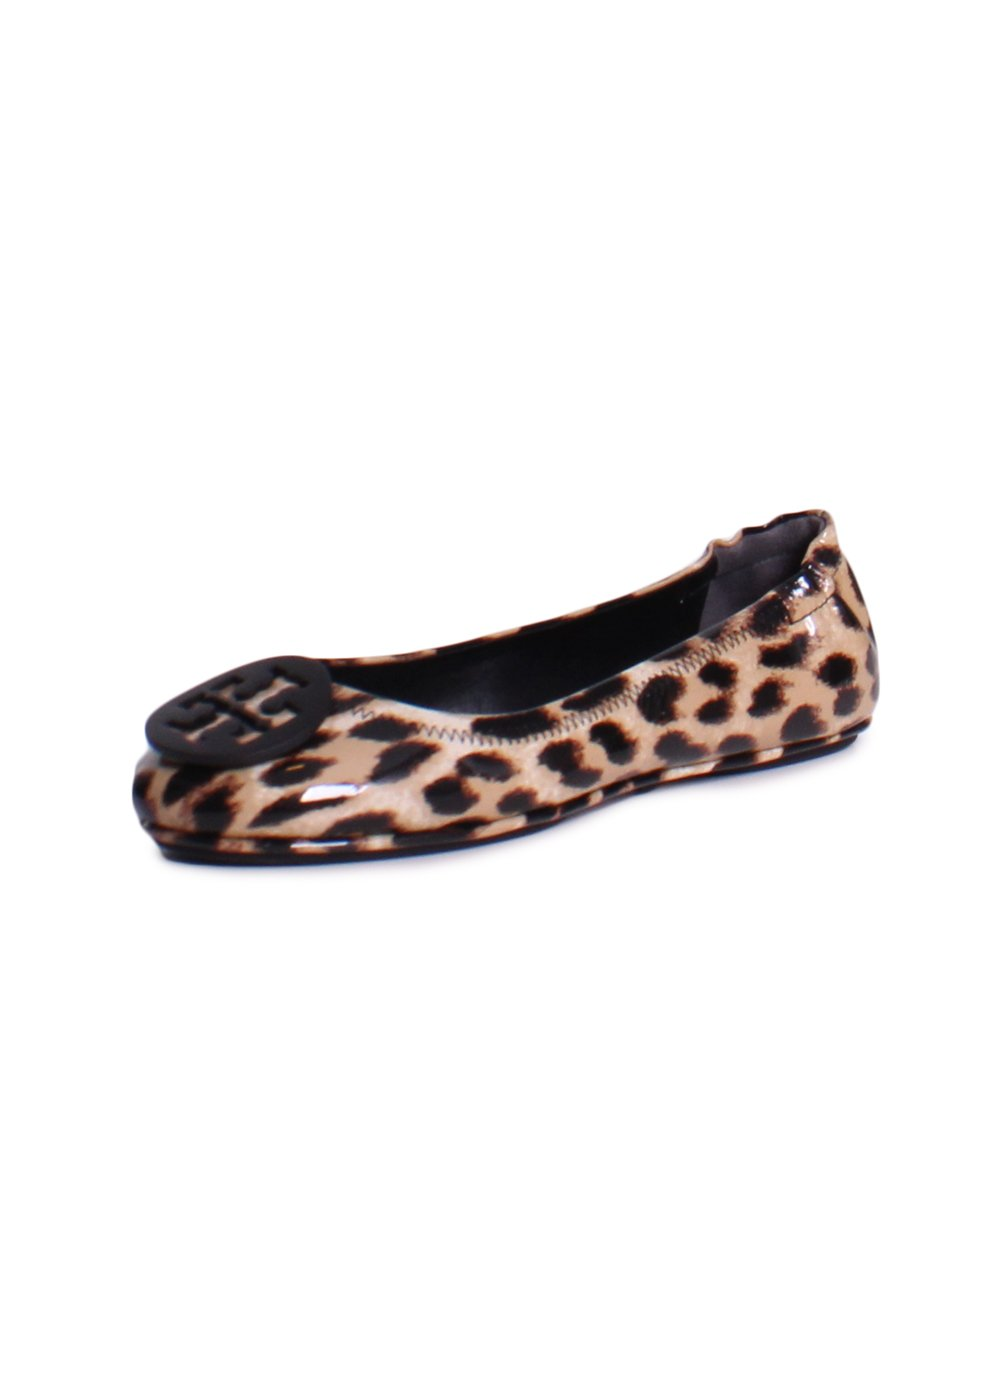 Tory Burch Minnie Travel Patent Leather Ballet Flats In Natural Leopard Size 10.5 by Tory Burch